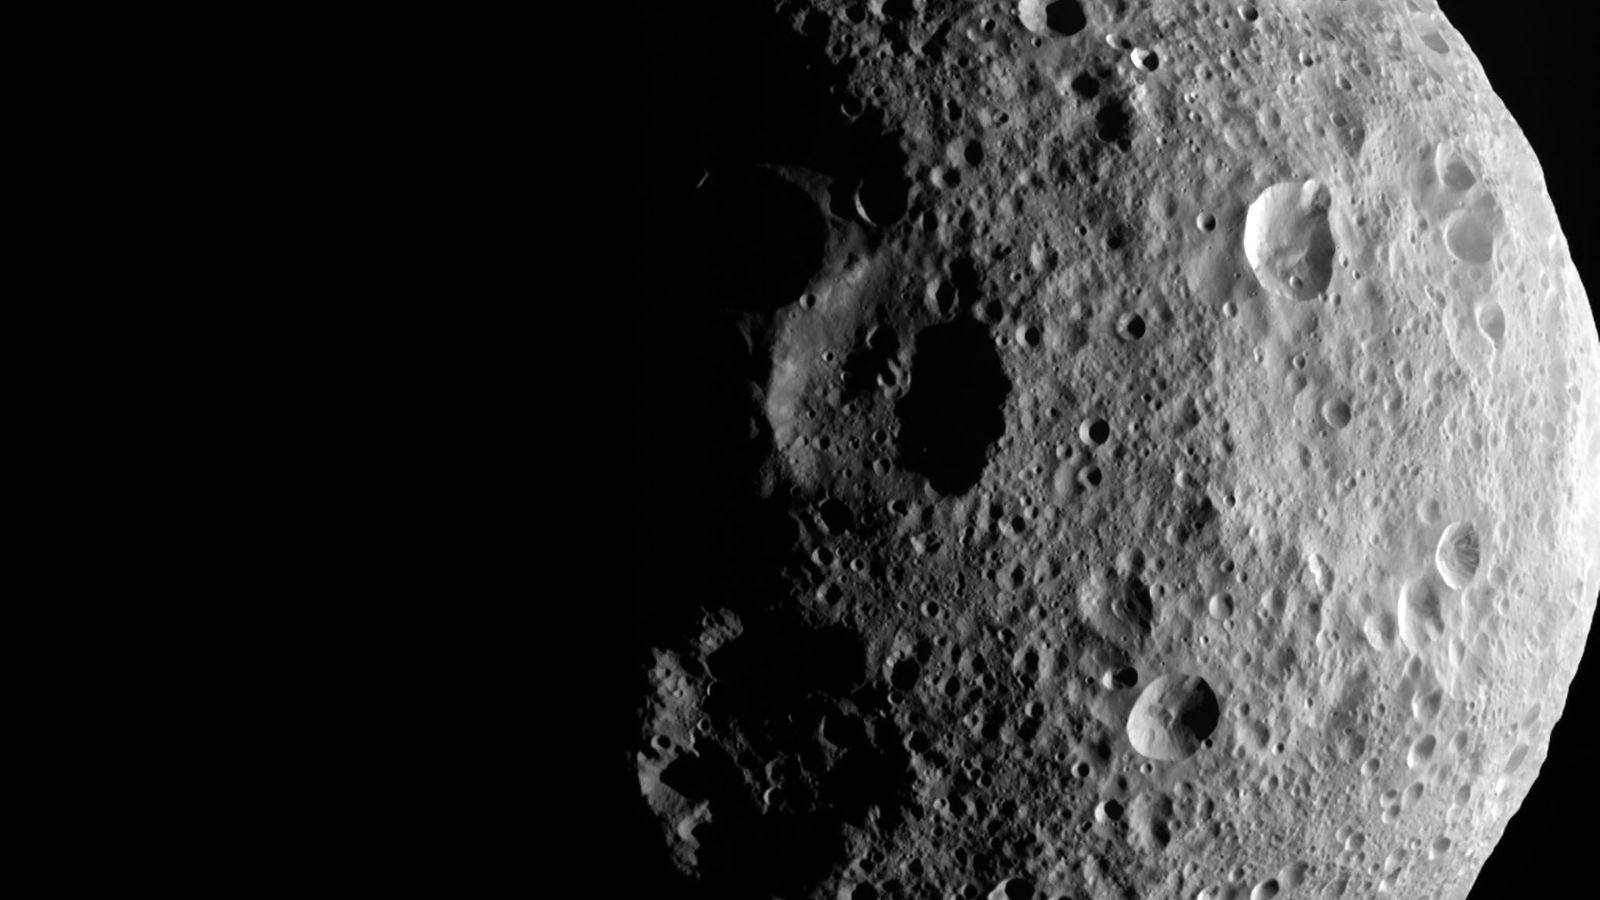 The shadowy outlines of terrain in the asteroid Vesta's northern region are visible in this image ...